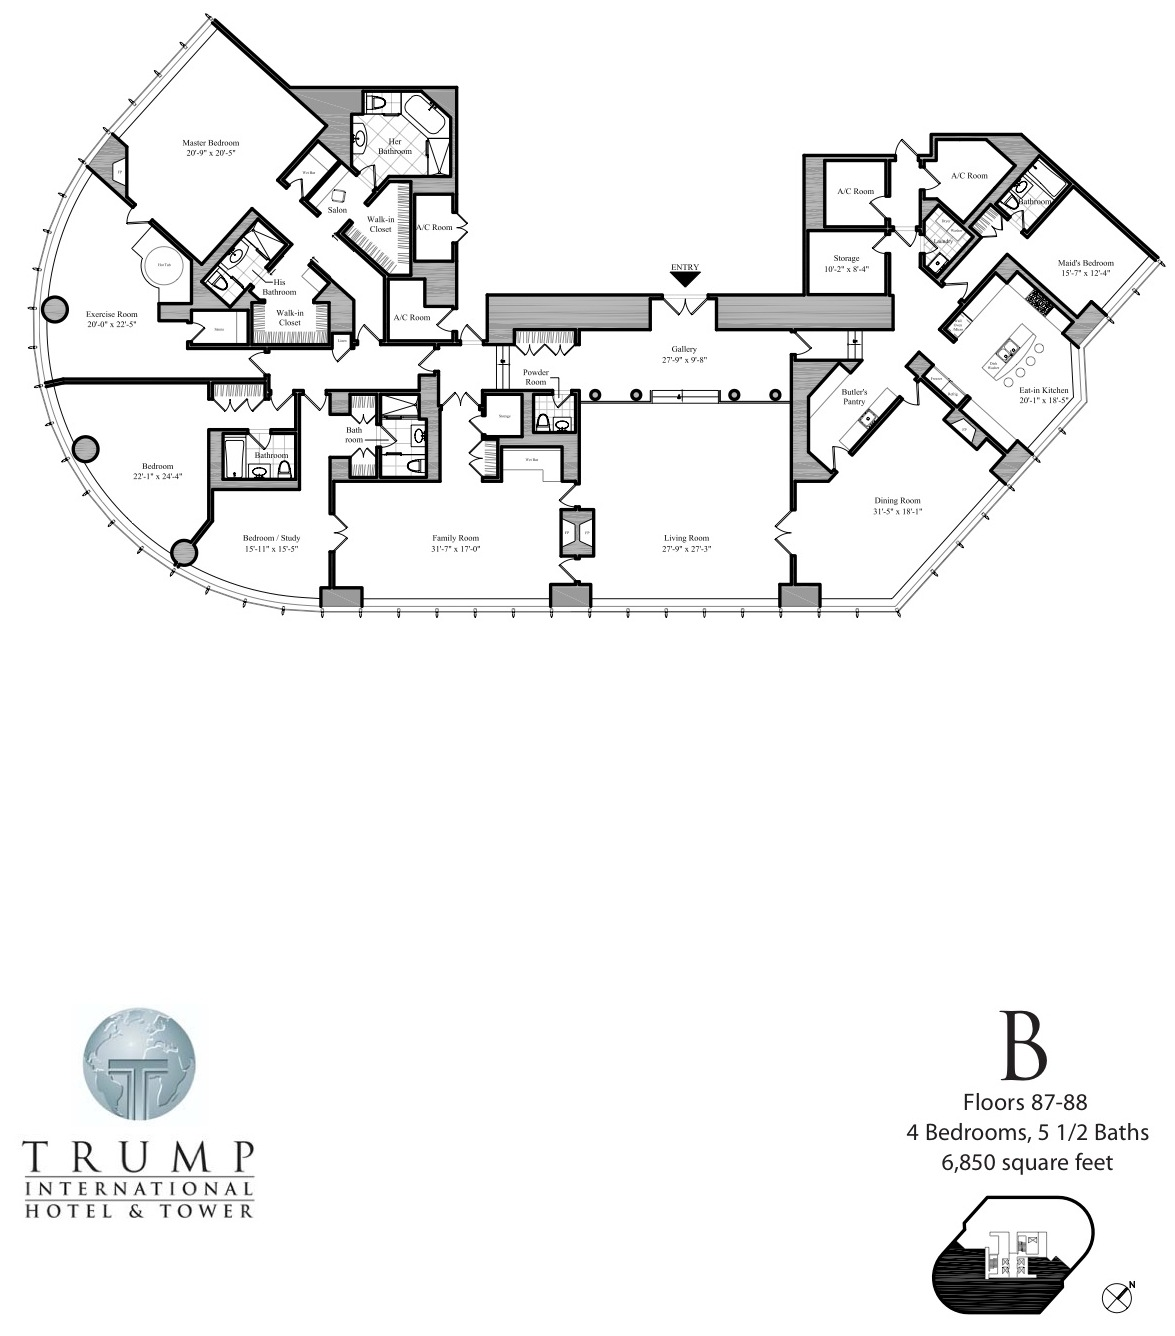 1175x1336 Tallest Towers Trump Tower Chicago, Realty Kingdom Of Donald